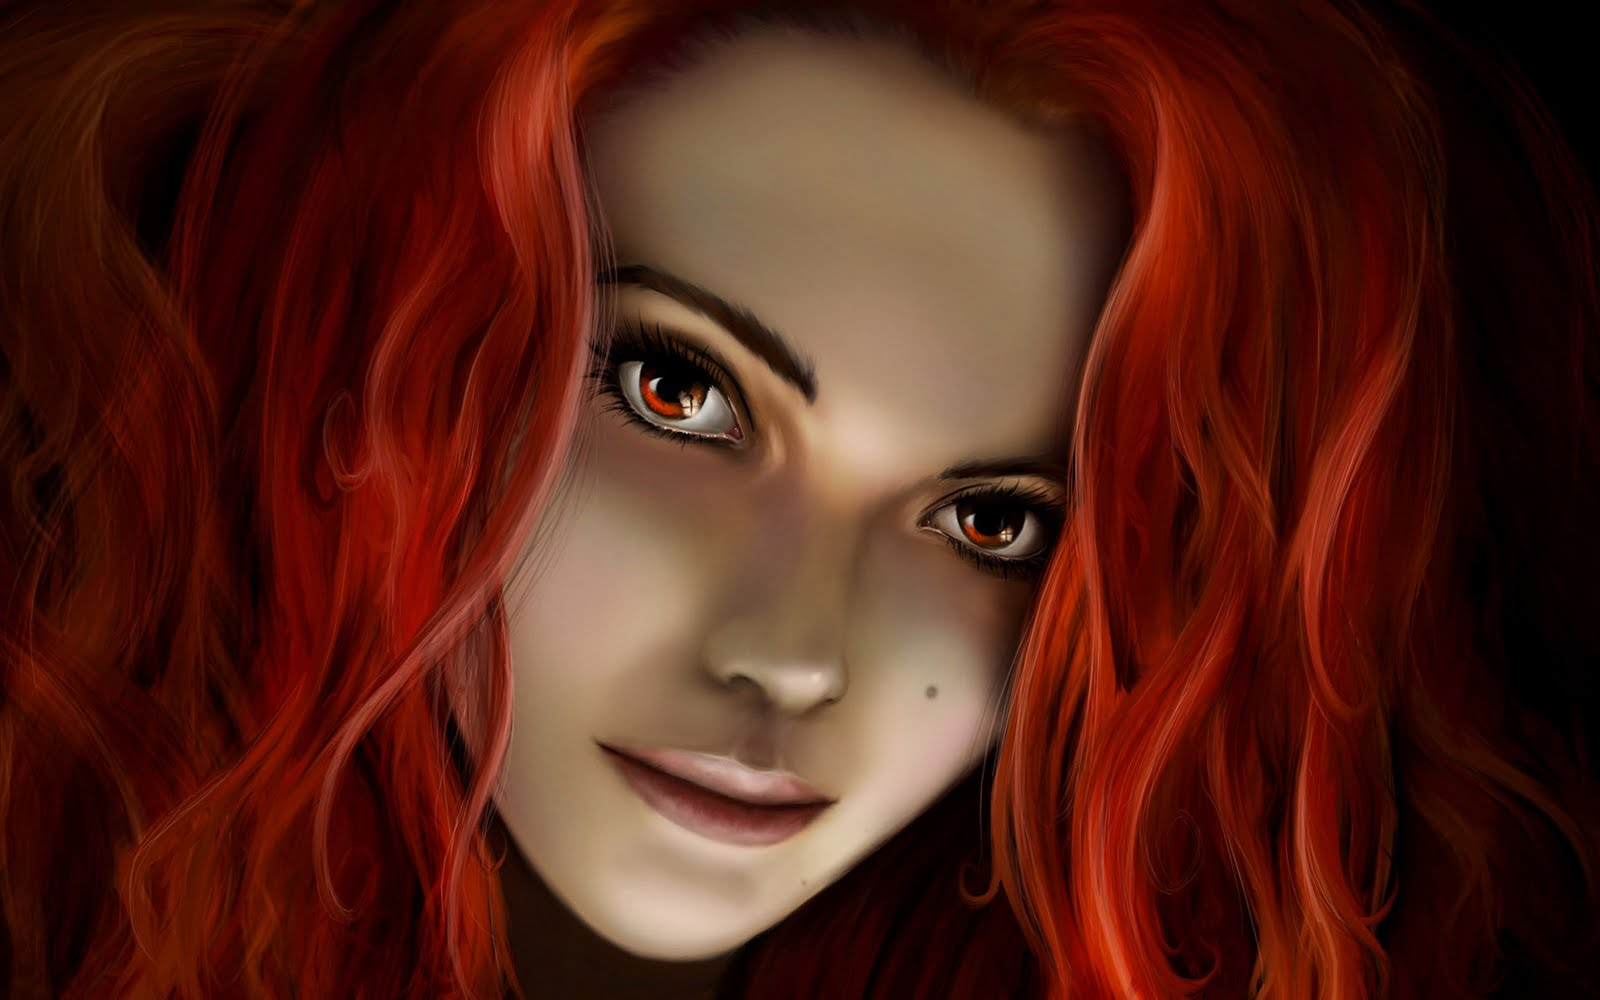 To Download Fantasy Girl With Red Hair wallpaper click on full size